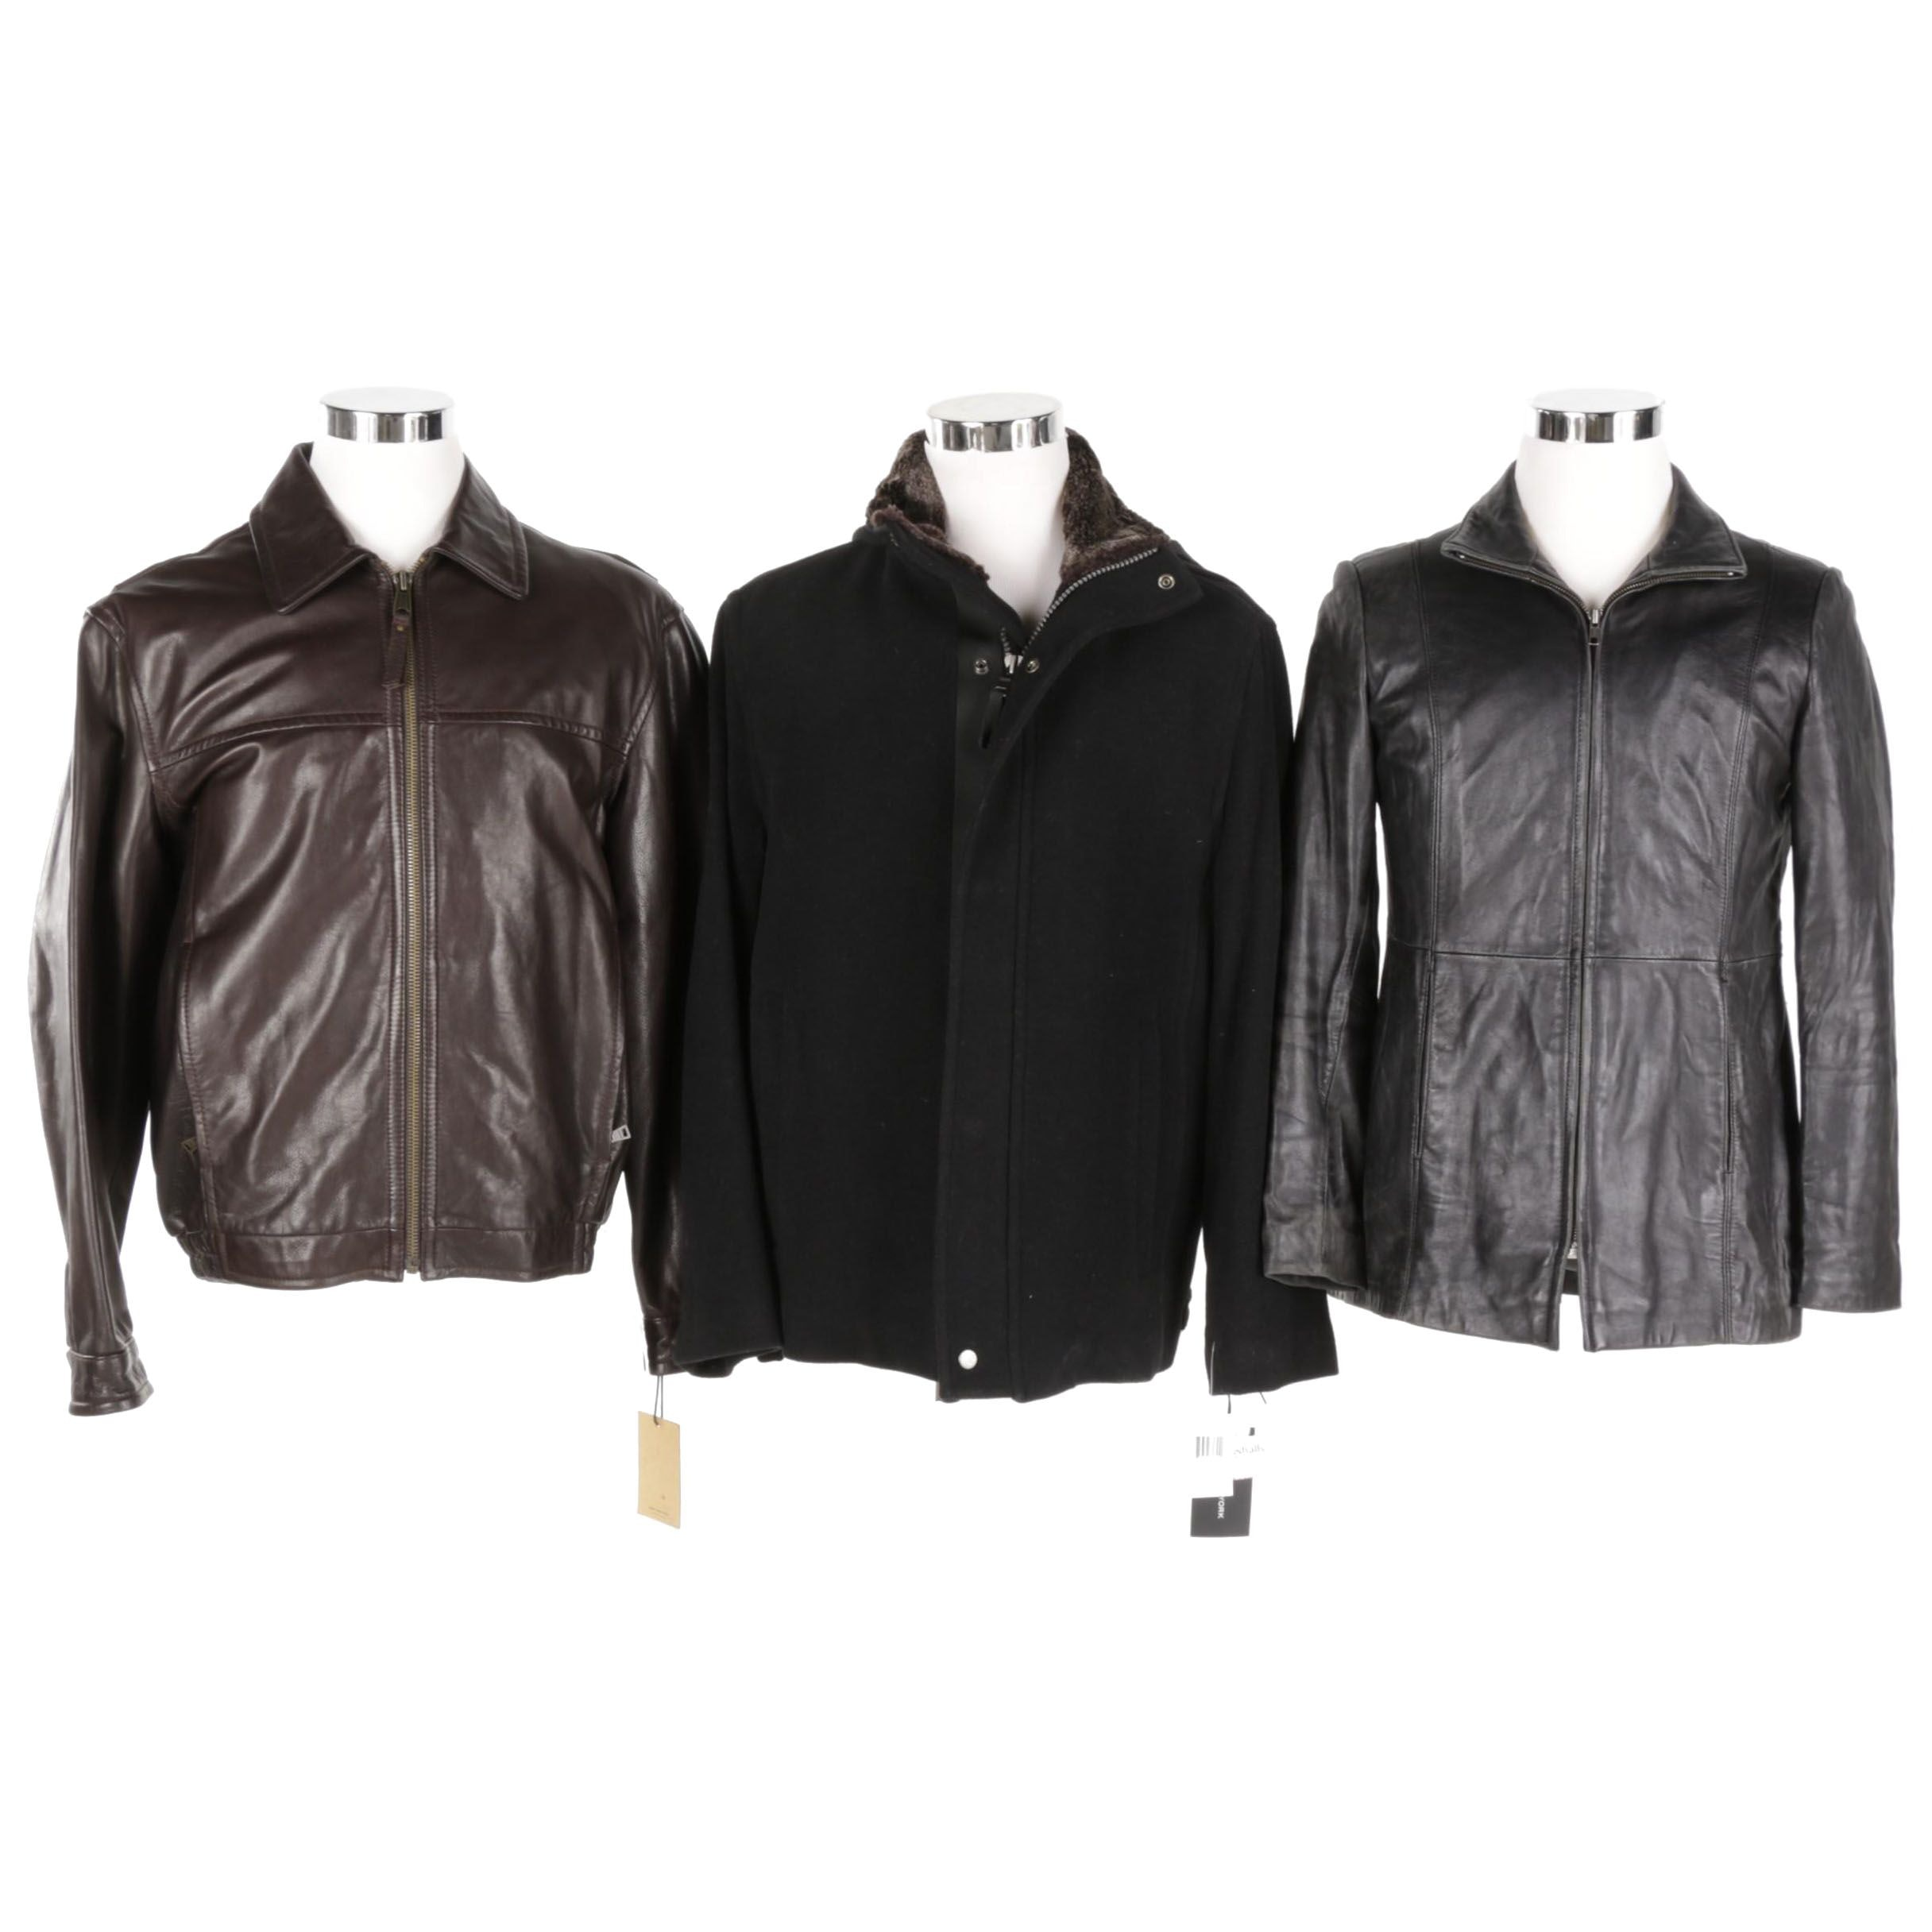 Men's Jackets Including Marc New York